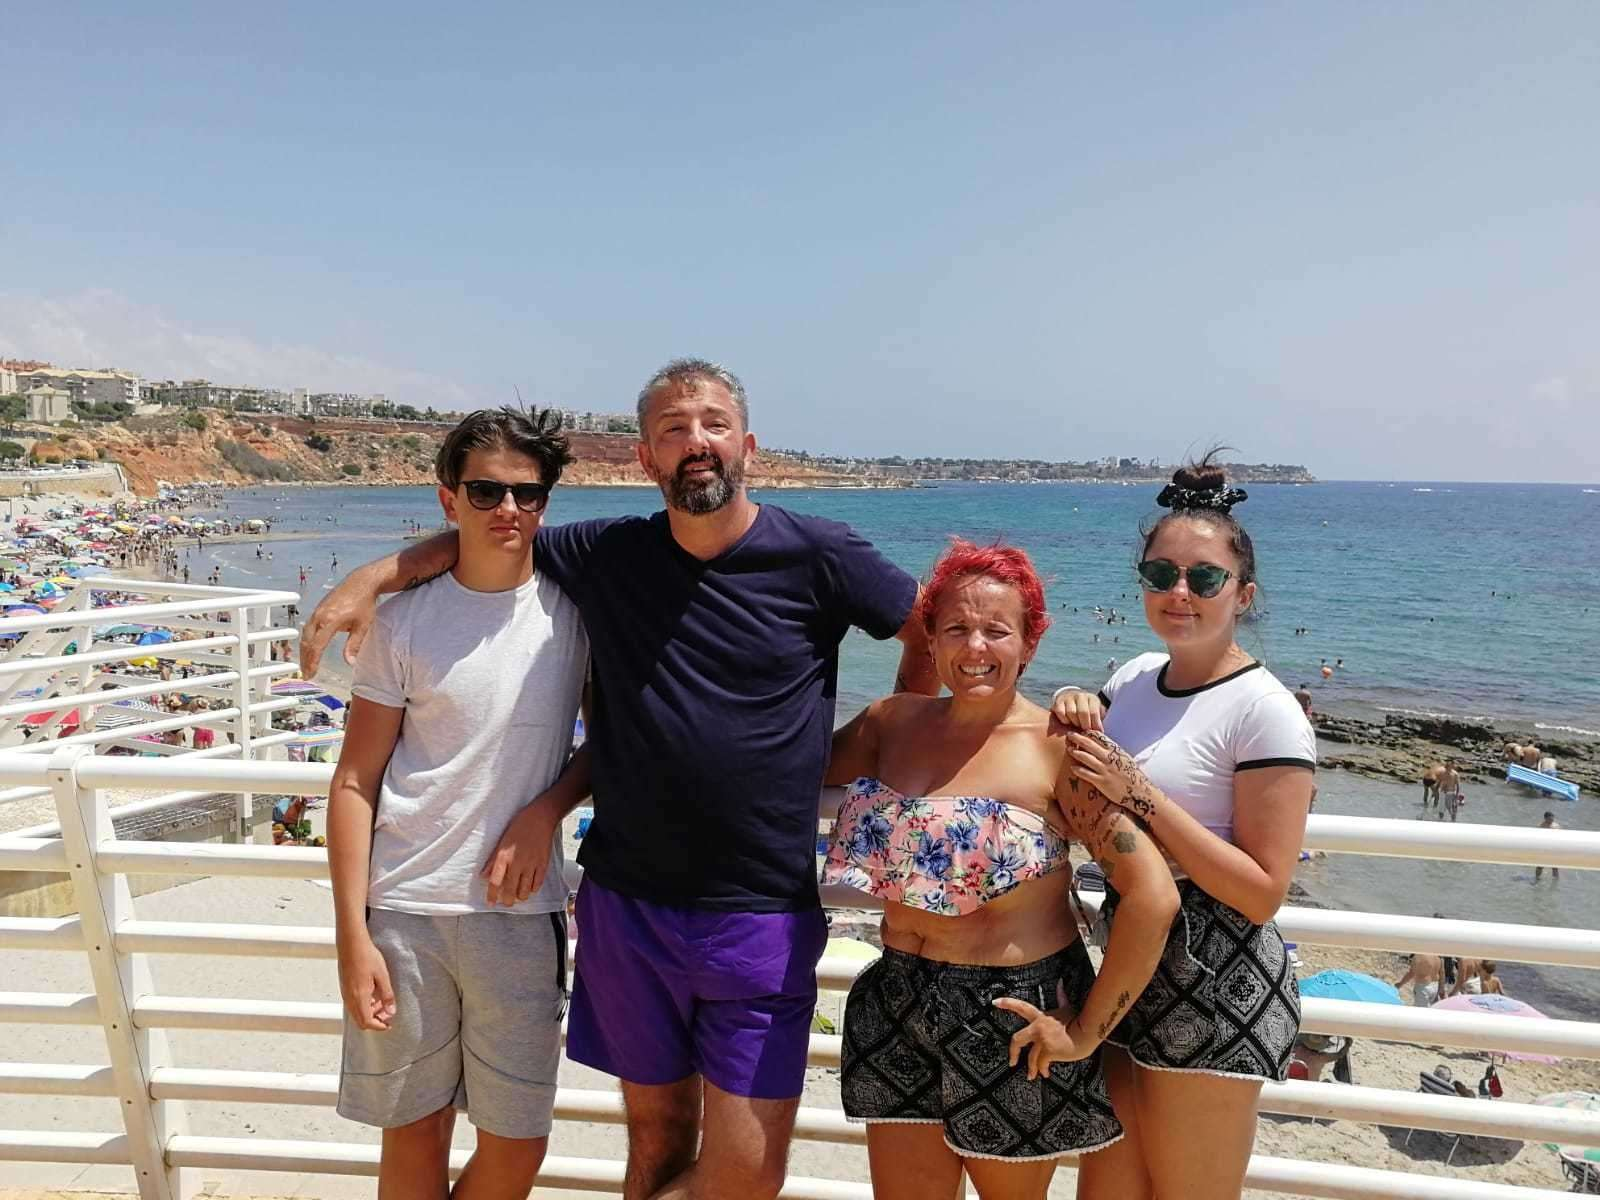 The Morris family on holiday – son Daniel, 17, dad Tony, mum Collette and daughter Lainnie, 19